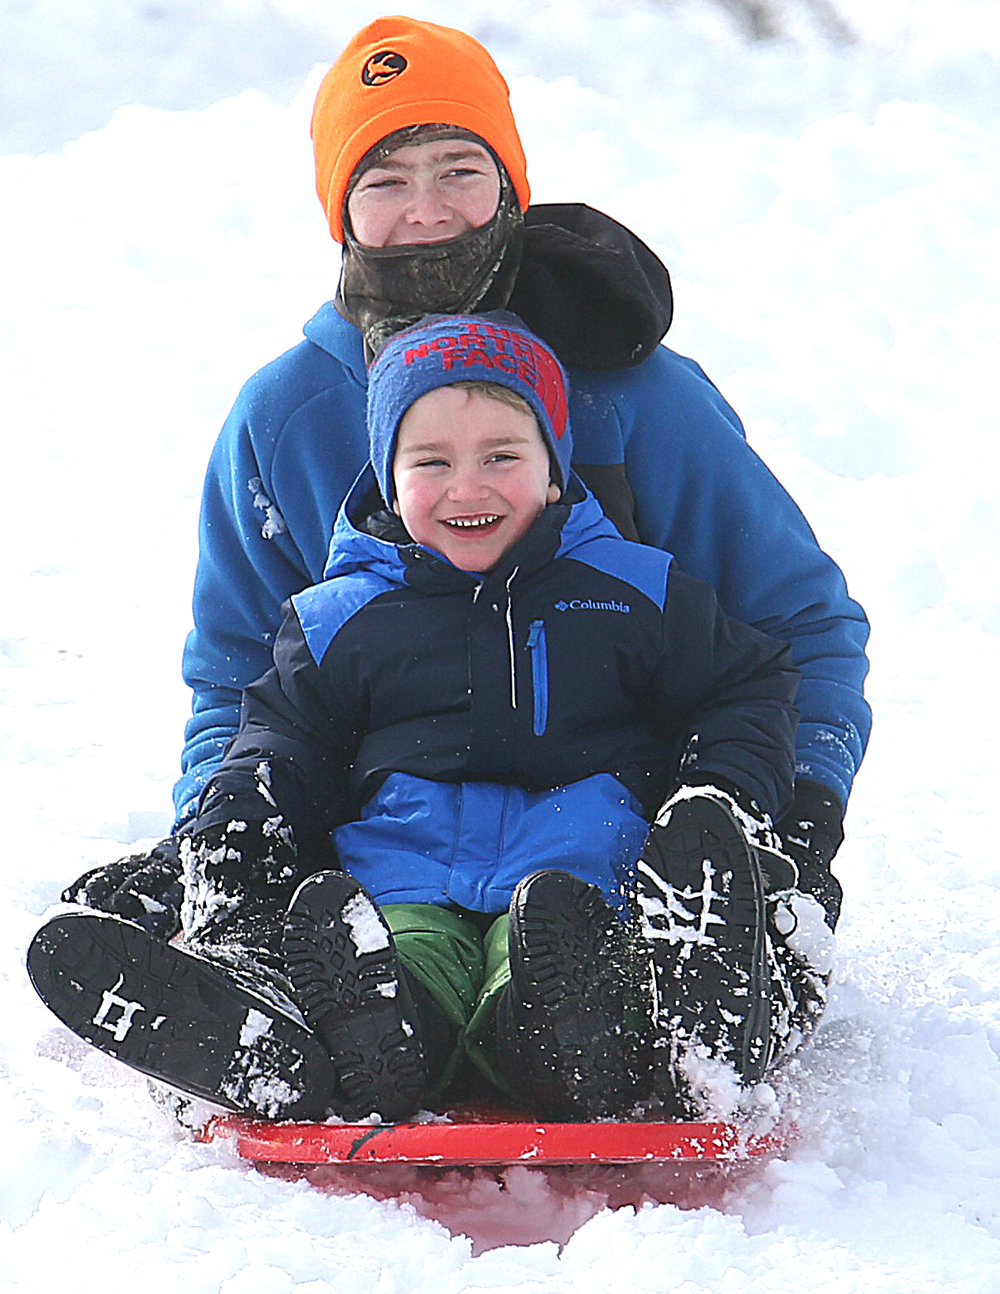 Charlie Graham, 3 at front and Barrett Kurmann, 14 sled together down a hill inside Washington Park Saturday morning. On Saturday, the Springfield area began digging out of its most significant winter storm of the season after nearly a foot of snow fell. The National Weather Service's official snow total for the capital city was 11.8 inches, as of 6 a.m. A total of 8.9 inches of snow fell at Abraham Lincoln Capital Airport Friday night, breaking the previous record for Feb. 20 of 3.6 inches set in 1989, the weather service reported. David Spencer/The State Journal-Register